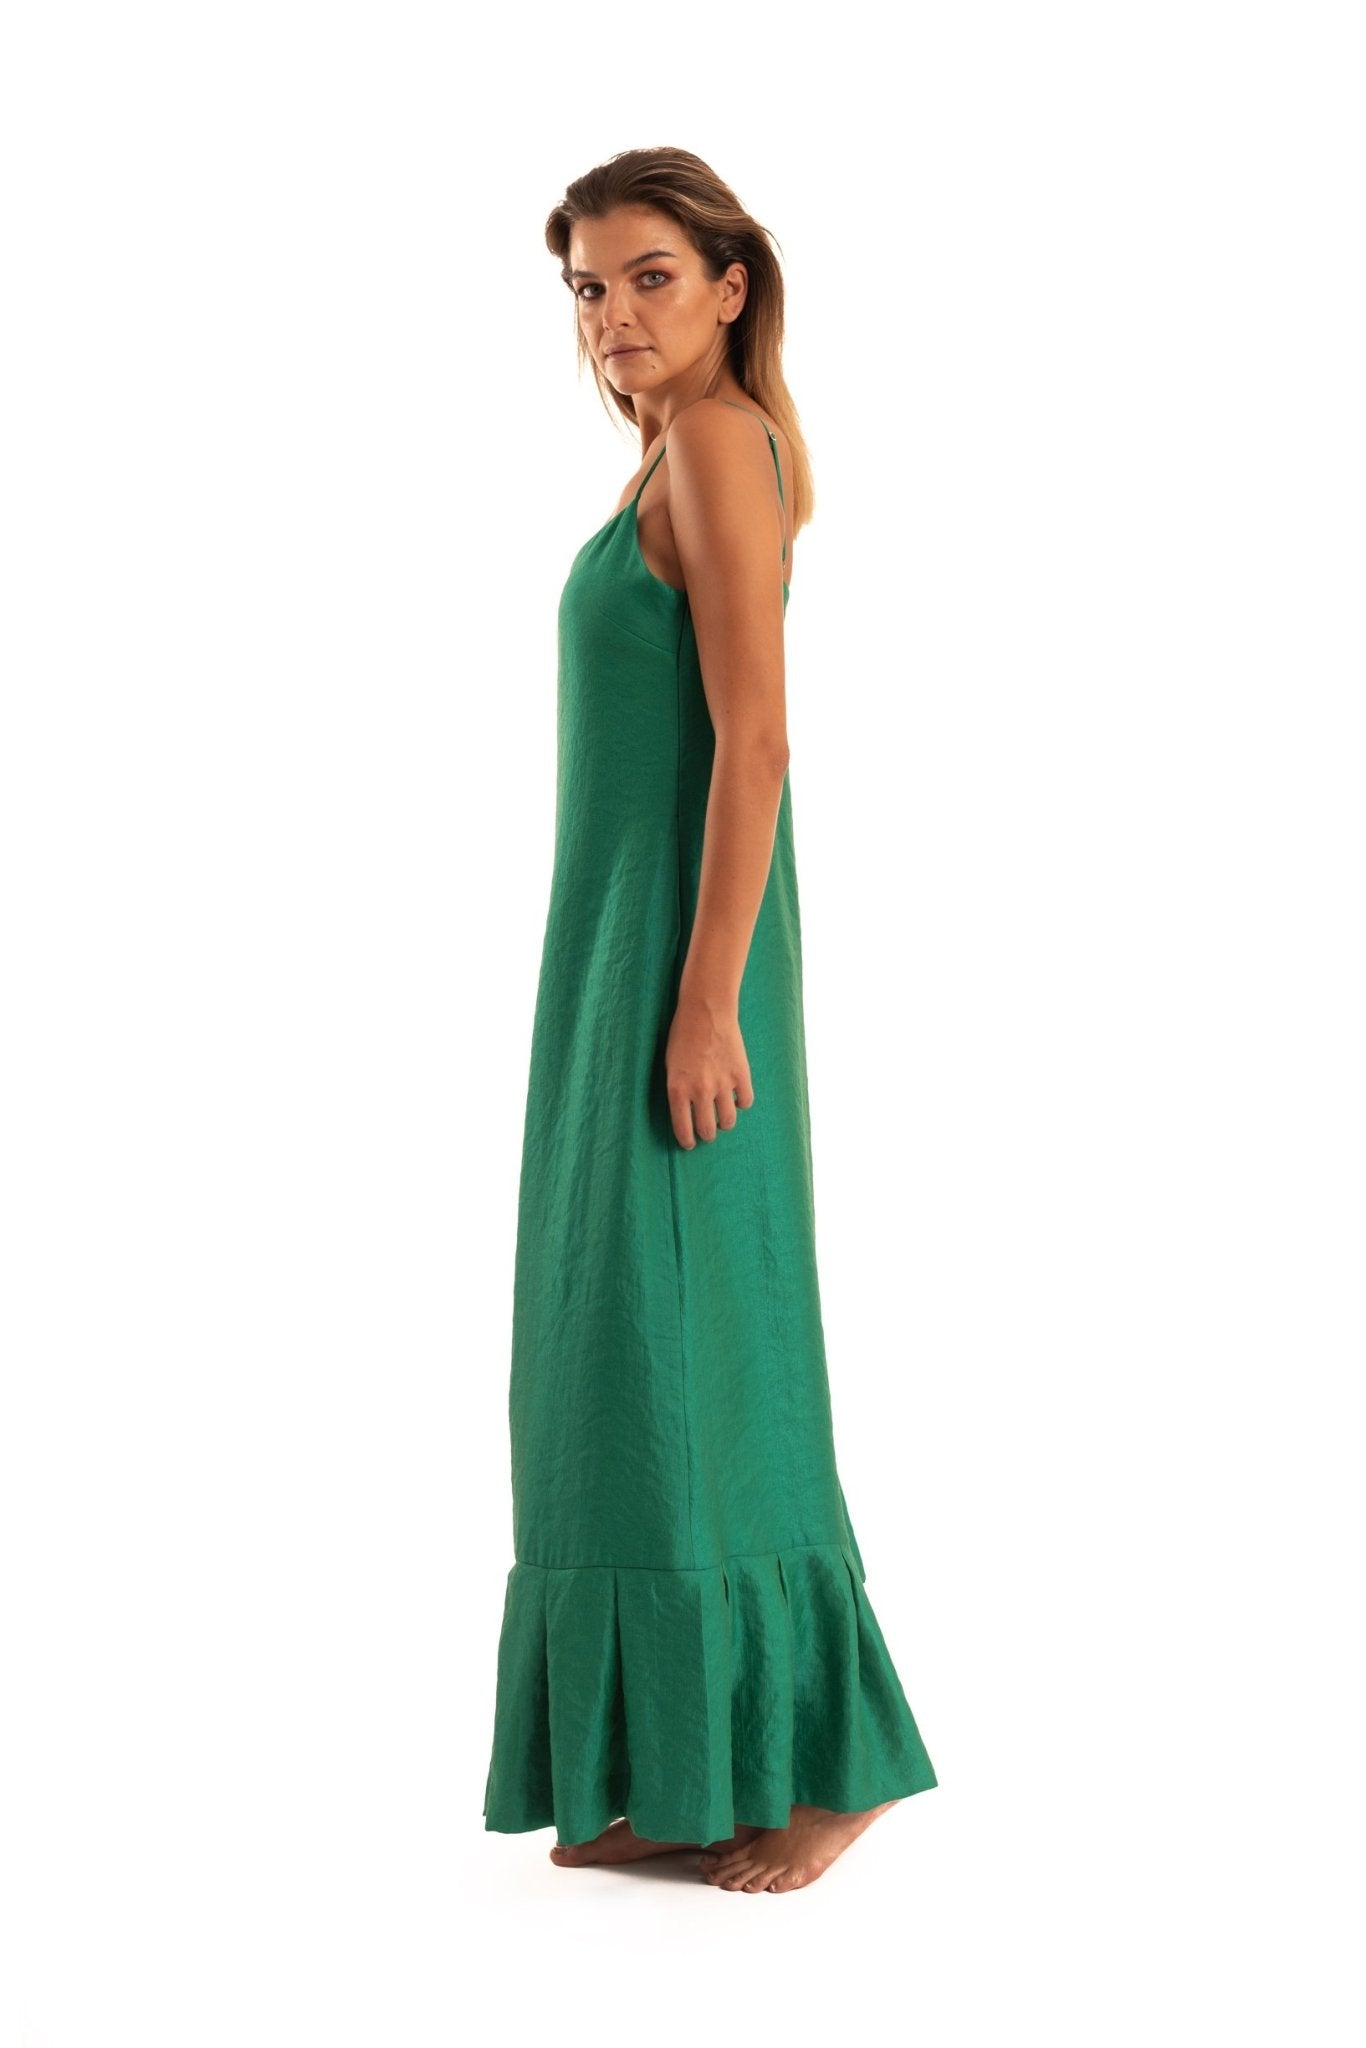 Green Slip Dress - NOPIN - The Clothing LoungeNOPIN